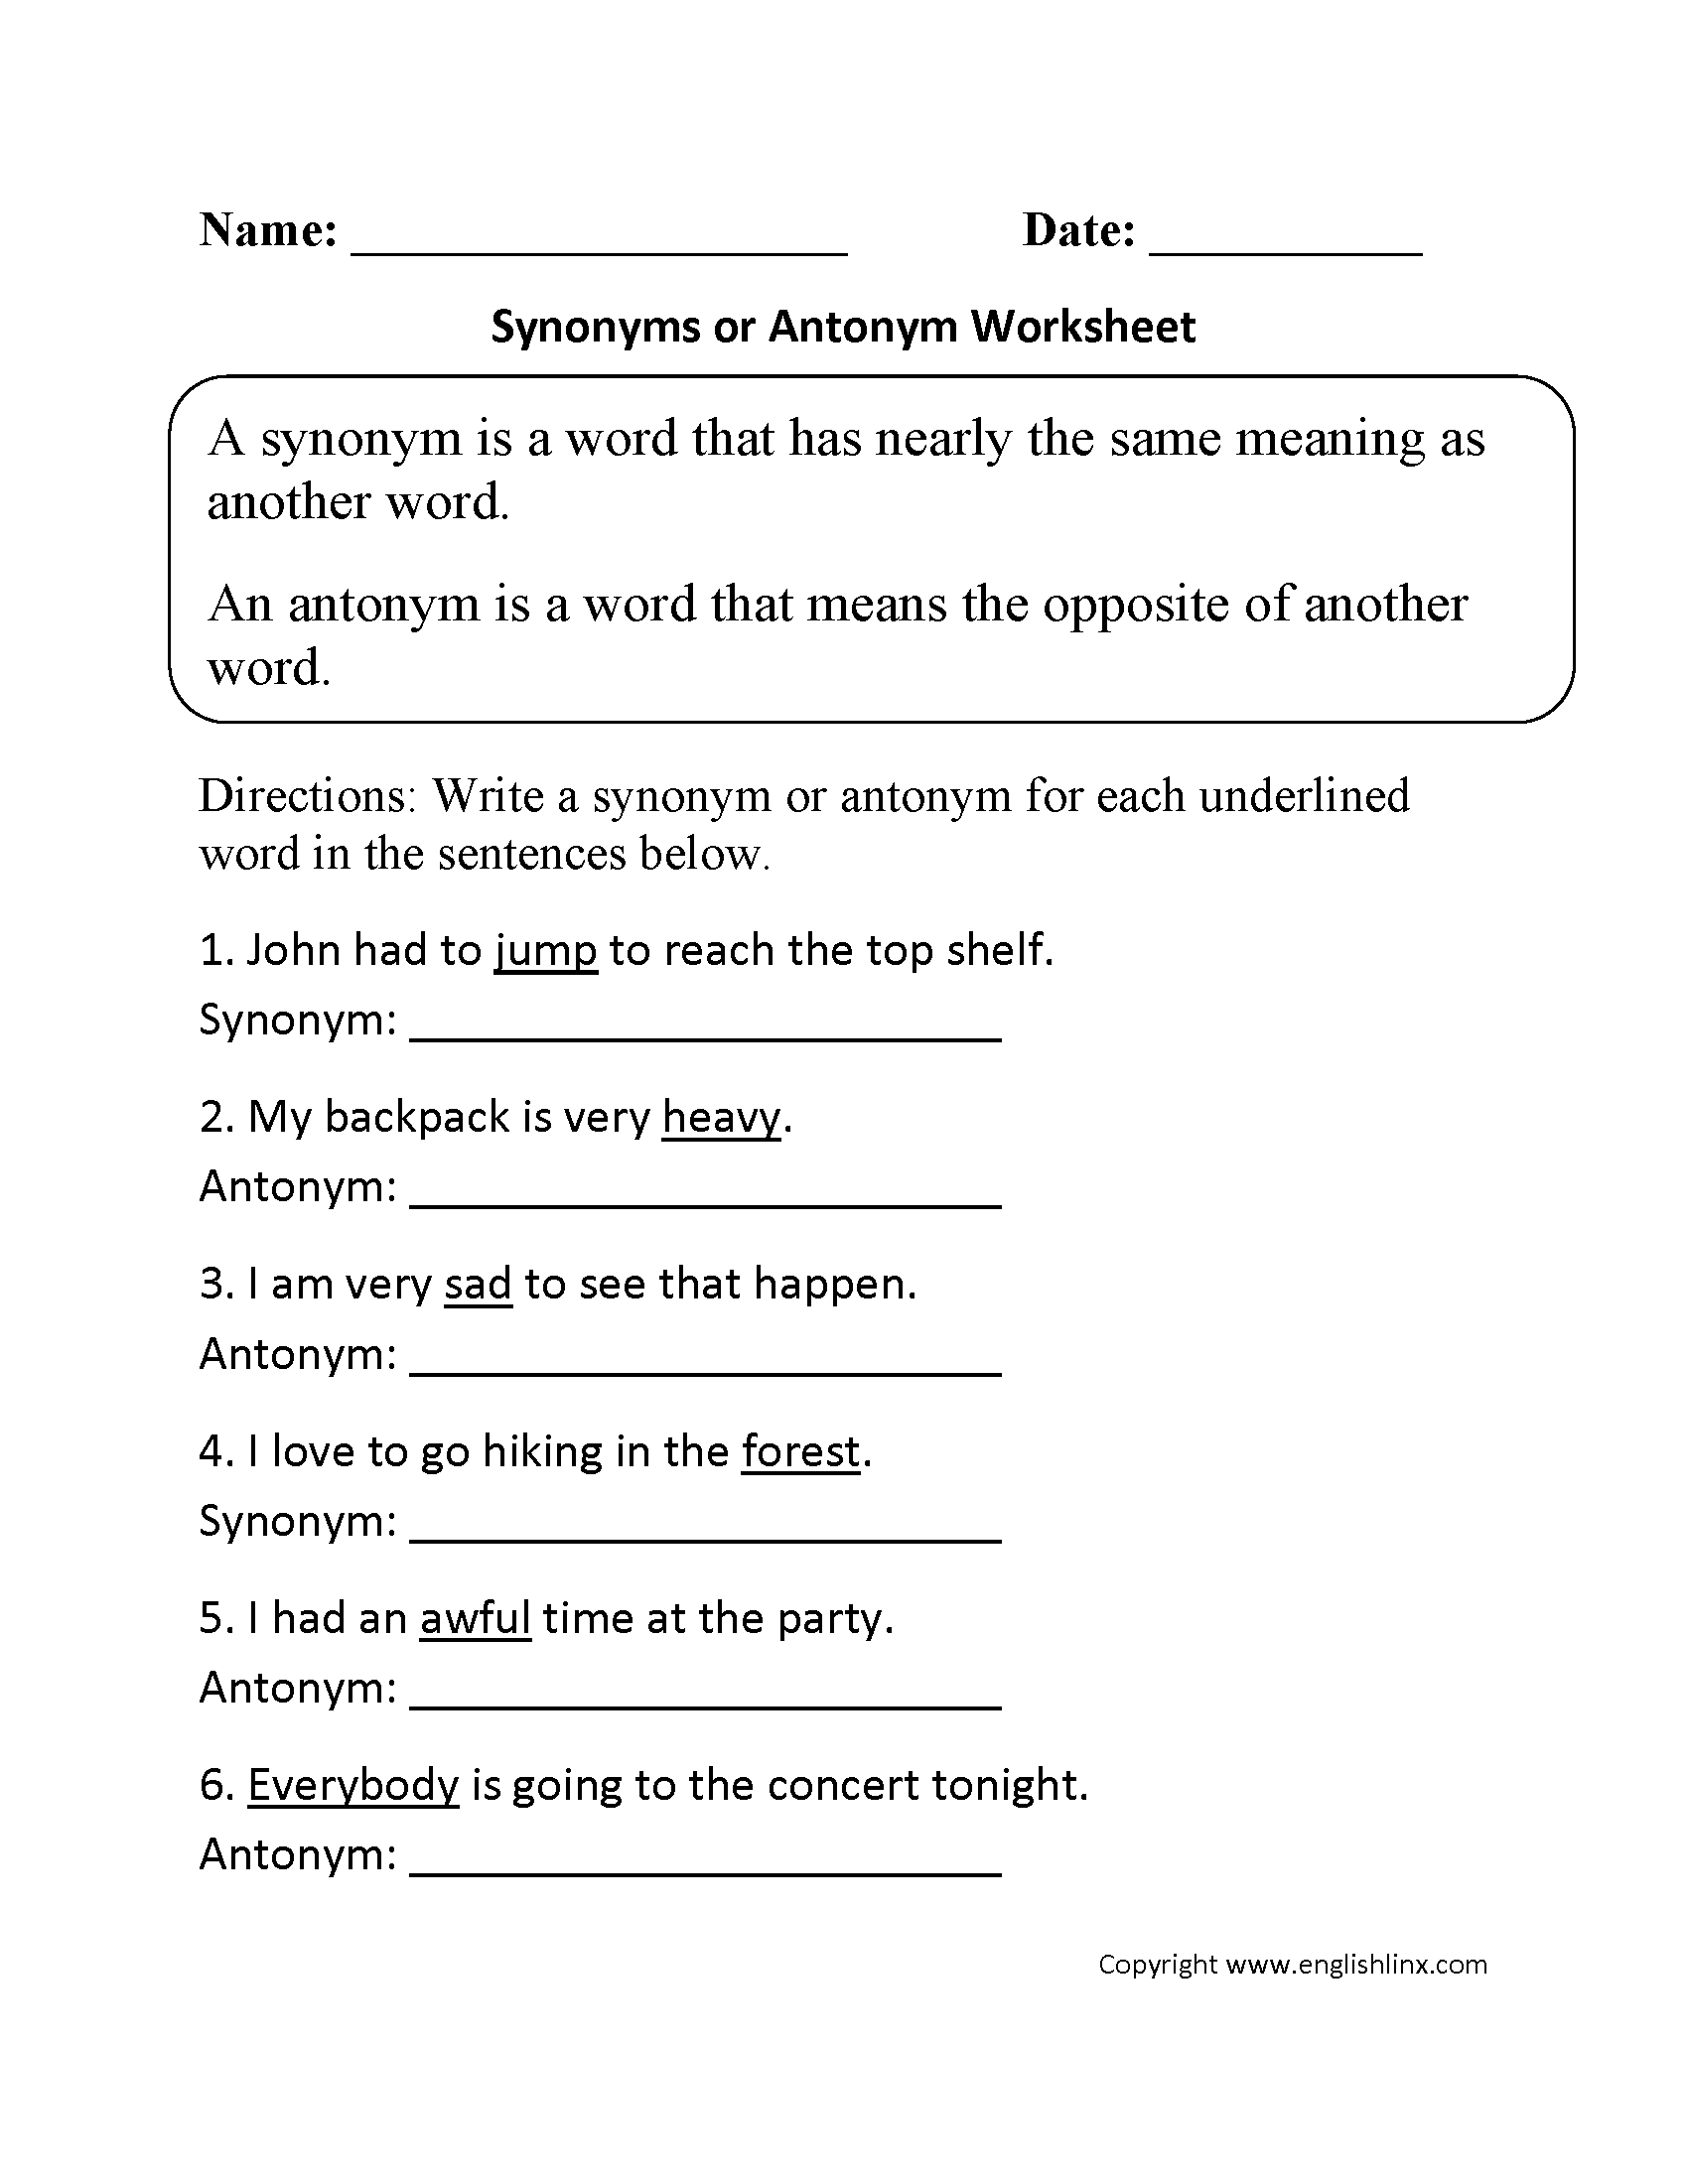 Vocabulary Worksheets | Synonym And Antonym Worksheets | Free Printable Worksheets Synonyms Antonyms And Homonyms